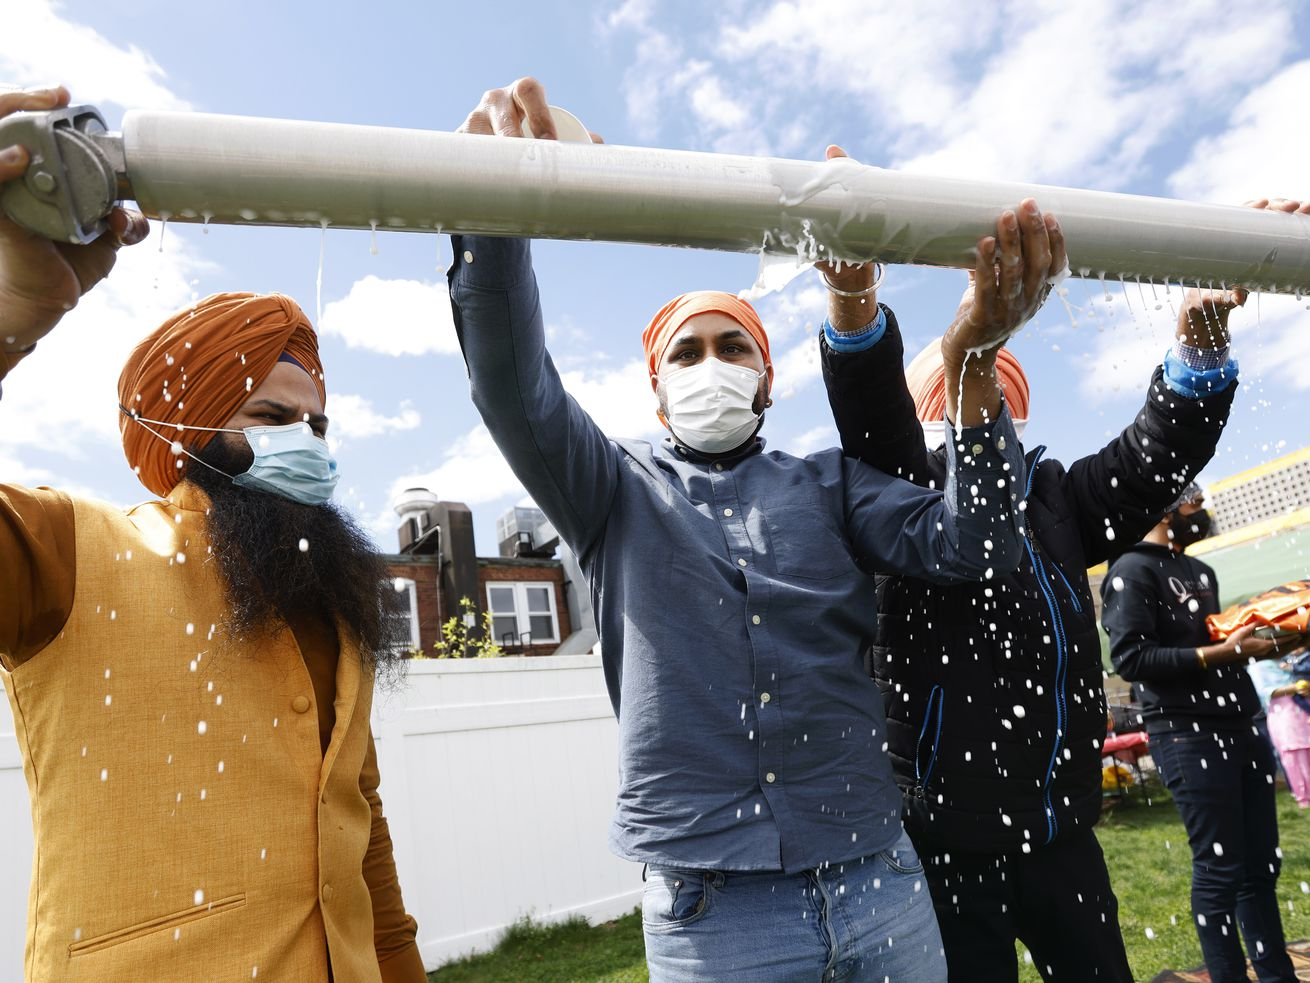 Jasbir Singh, left, and Vijay Singh wash a flagpole with milk as part of a ceremonial changing of the Sikh flag during Vaisakhi celebrations at Guru Nanak Darbar of Long Island, Tuesday, April 13, 2021 in Hicksville, N.Y.